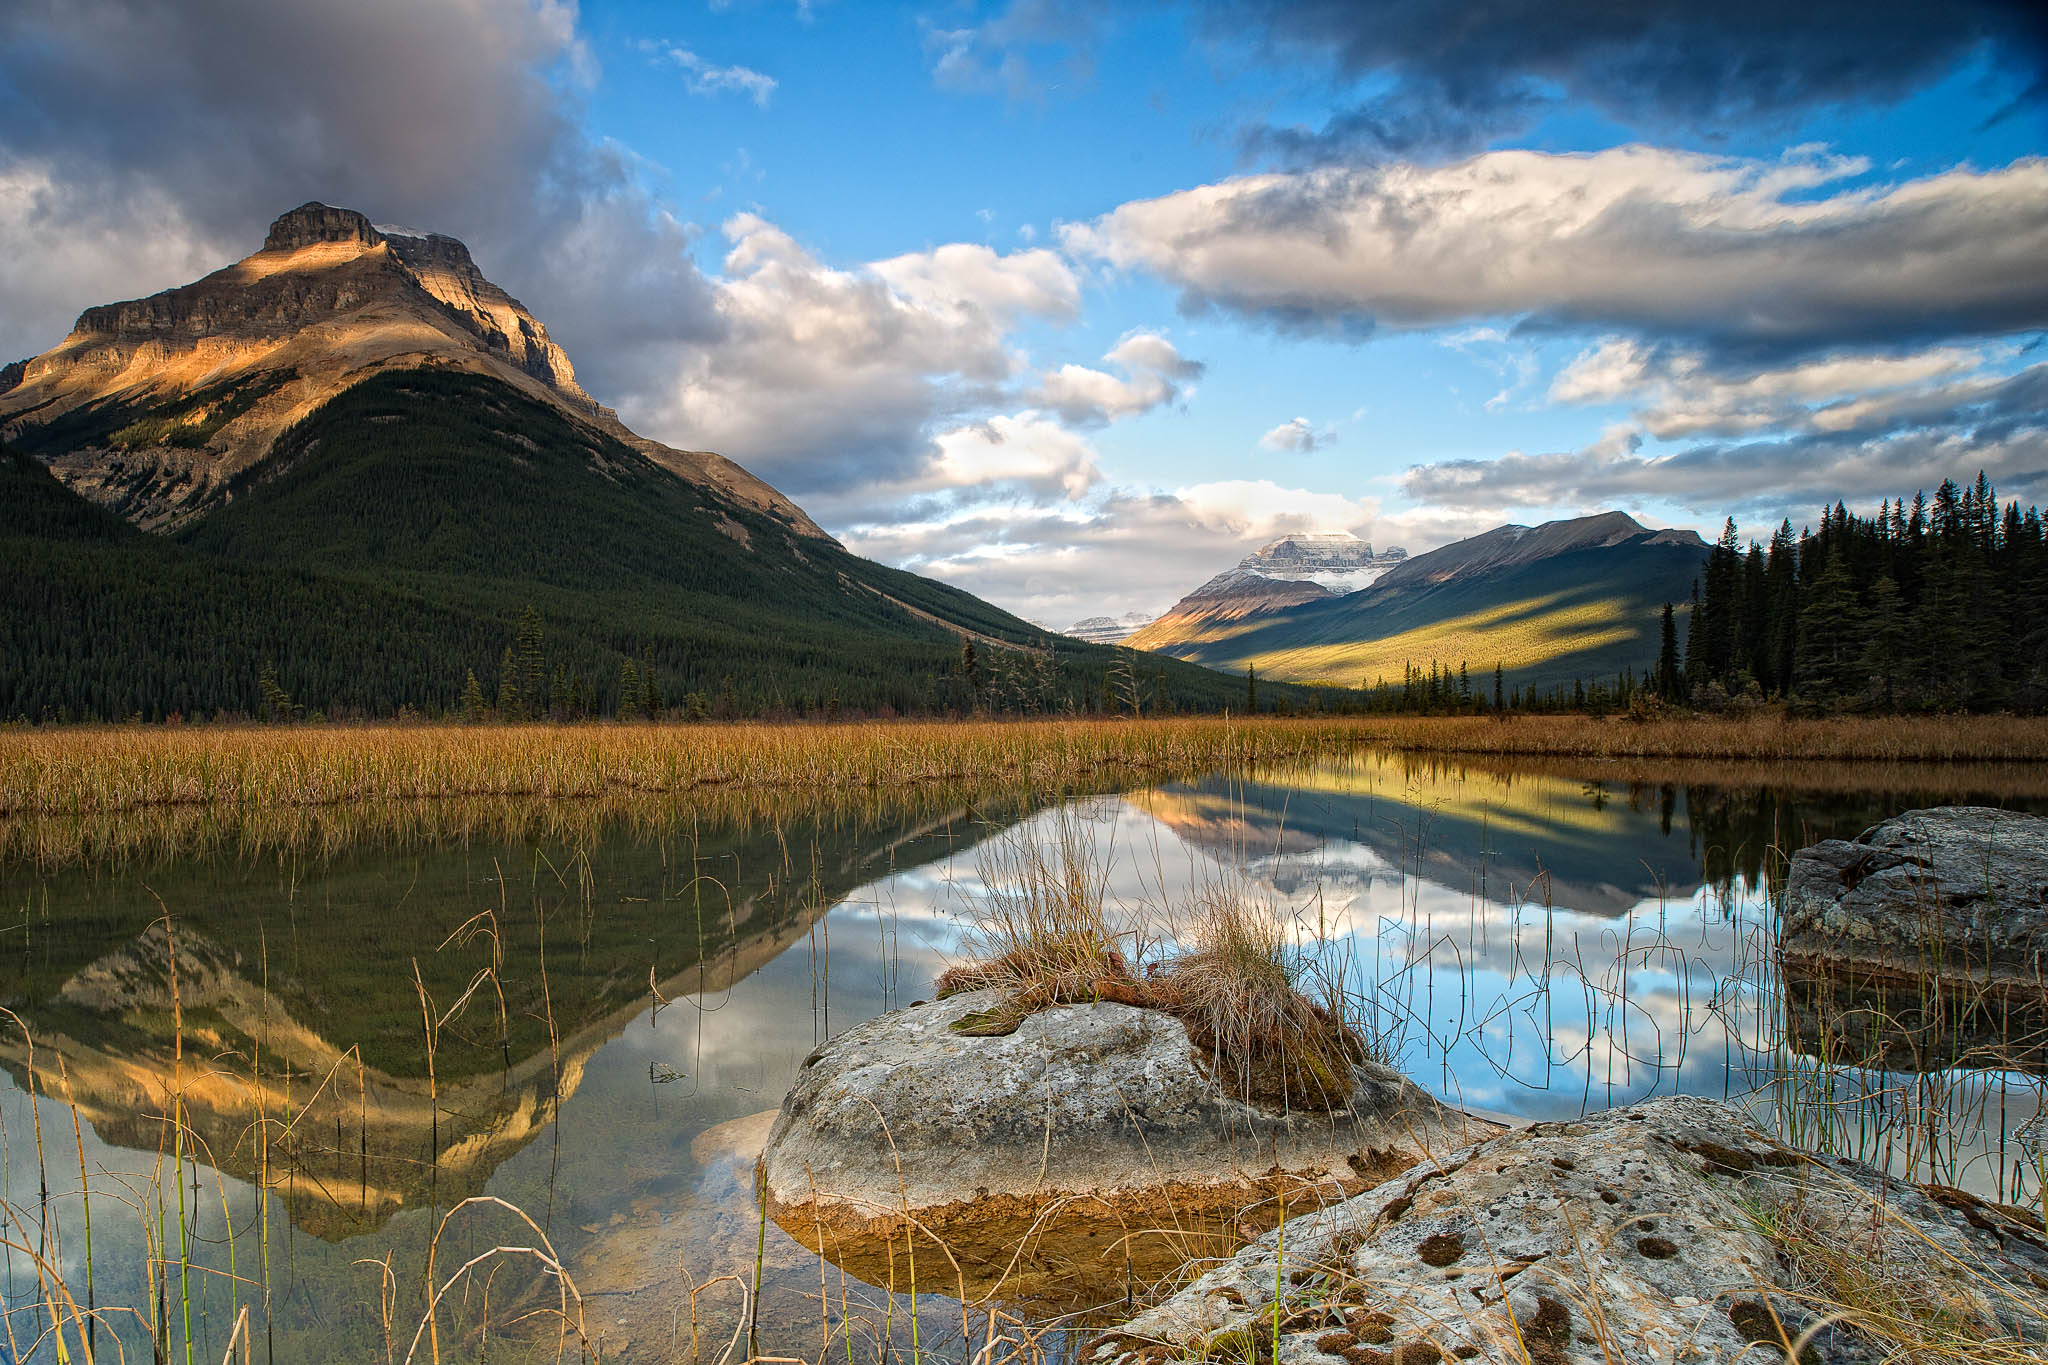 Landscape Photo Tip #9: Lower Your ISO